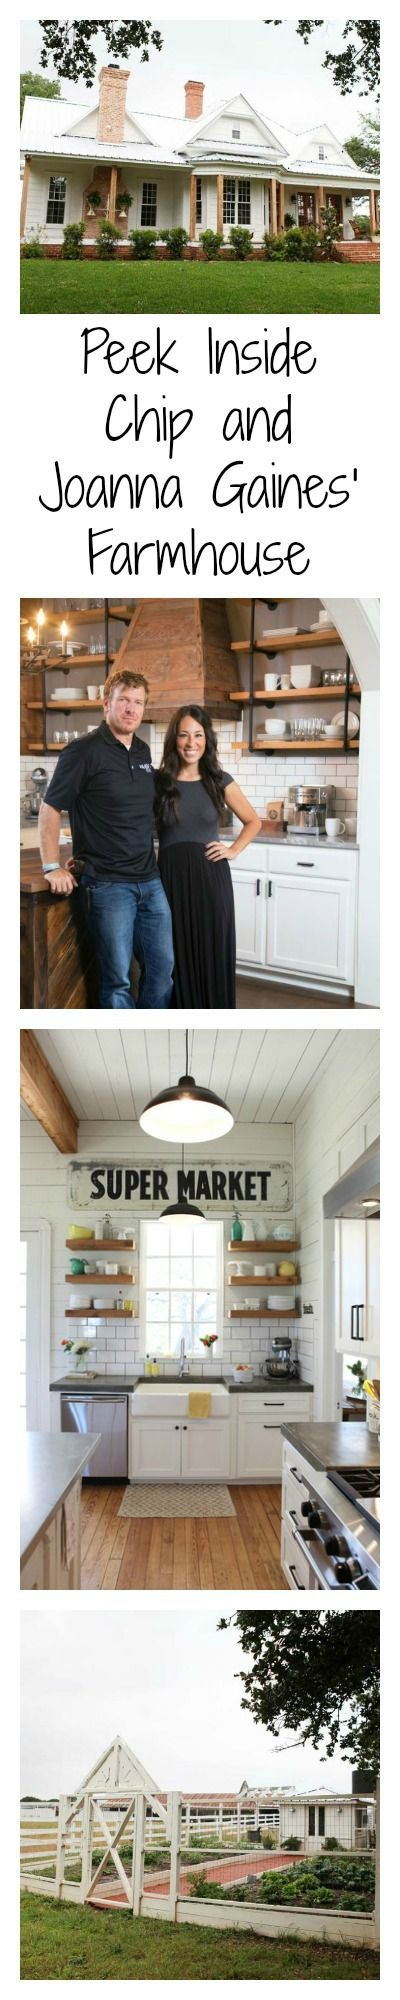 Tour chip and joanna gaines 39 farmhouse like you 39 ve never for How much do chip and joanna make on fixer upper